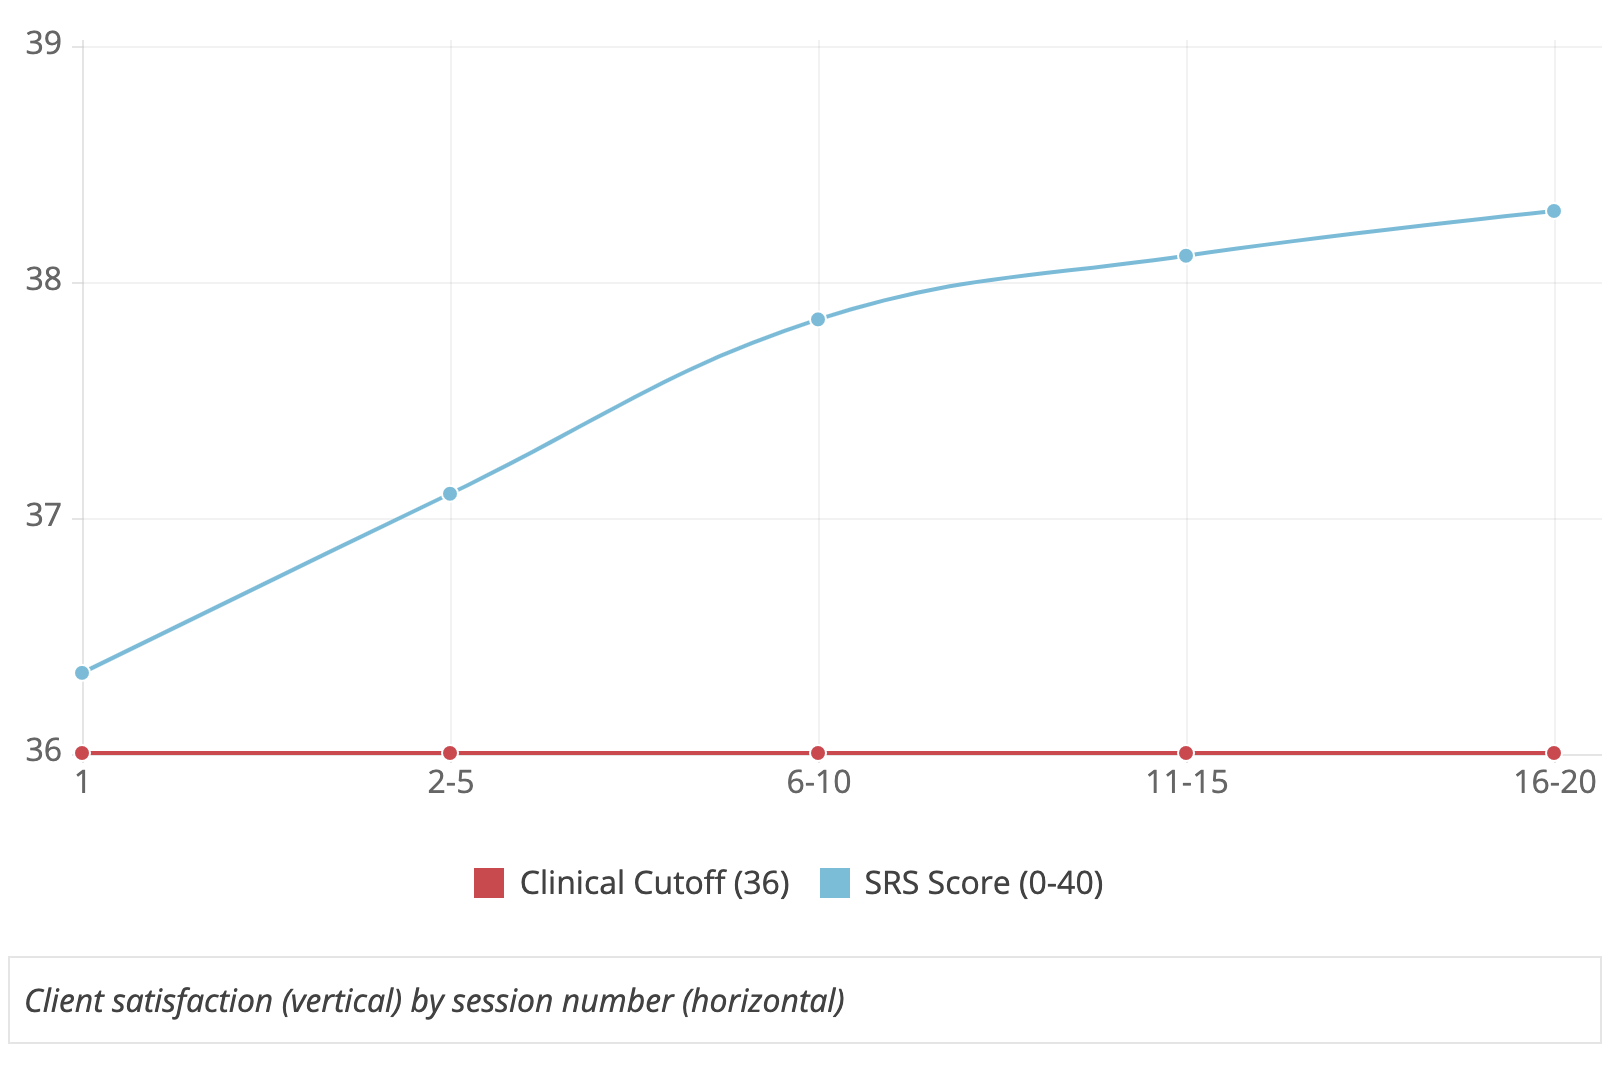 Average Session Rating Scale Scores